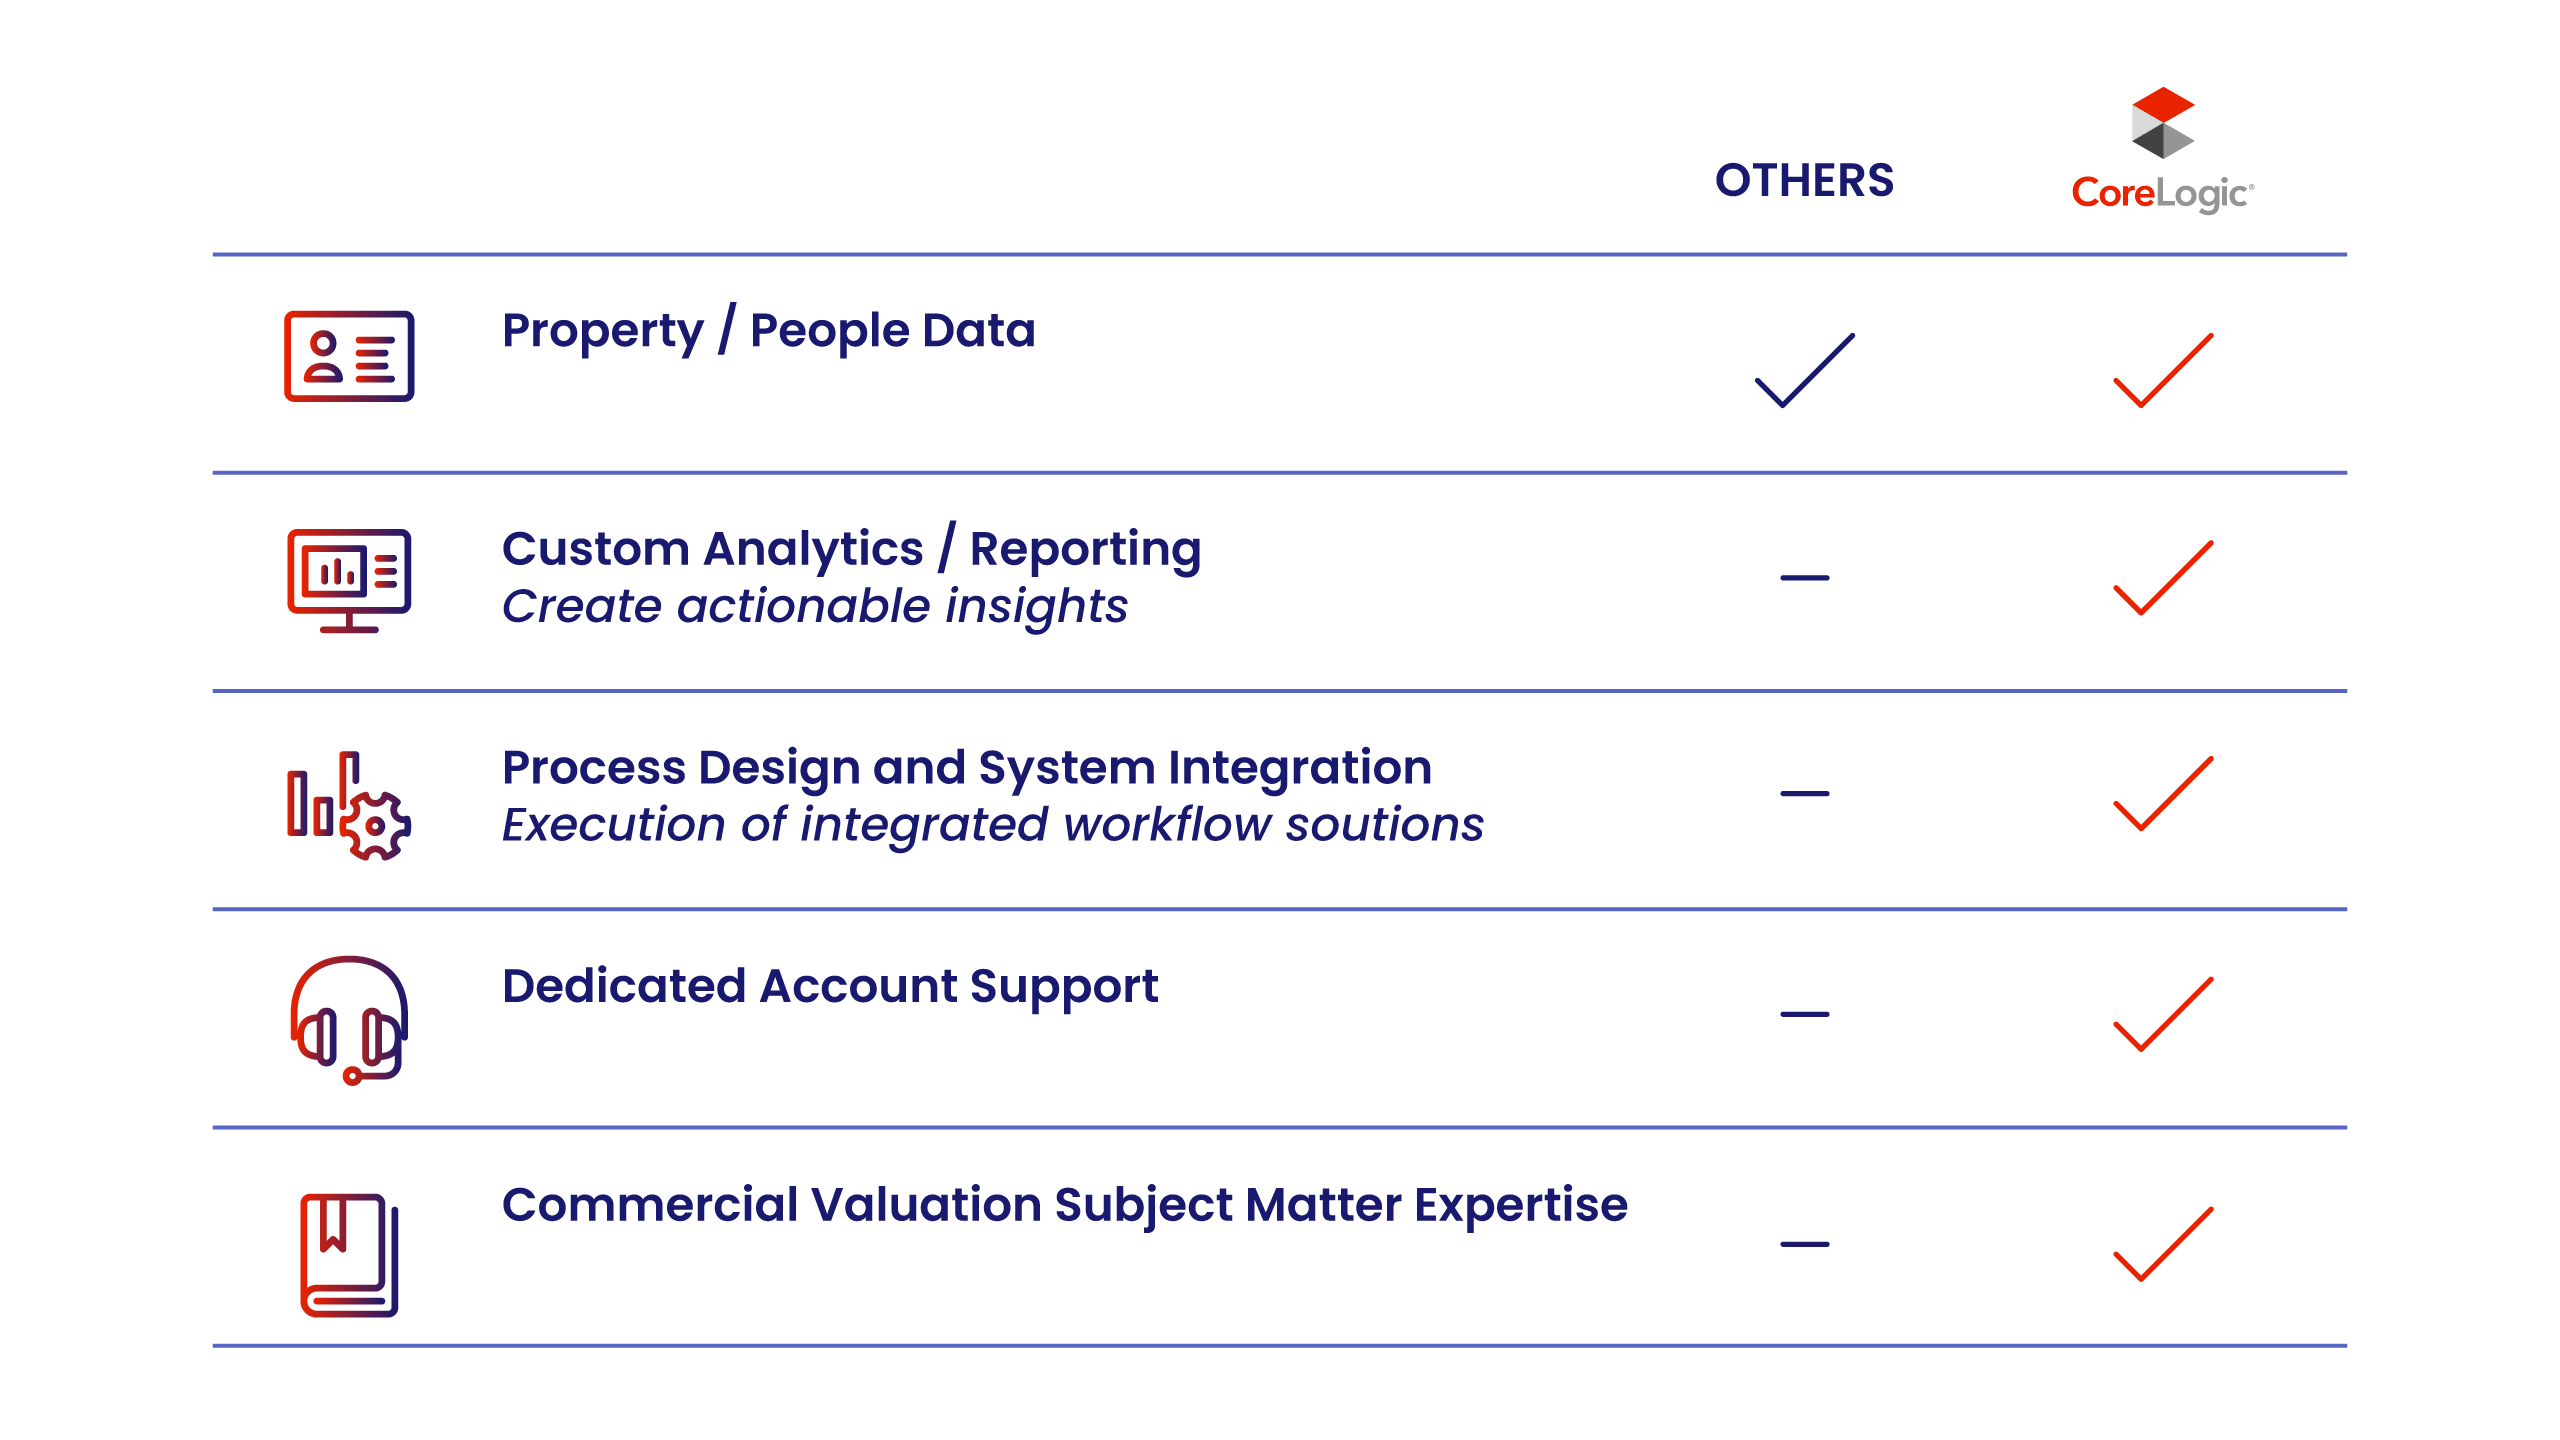 CoreLogic Commercial Tax Solutions - CoreLogic provides Property / People Data, Custom Analytics / Reporting, Process Design and System Integratoin, Dedicated Accont Support, and Commercial Valuation Subject Matter Expertise